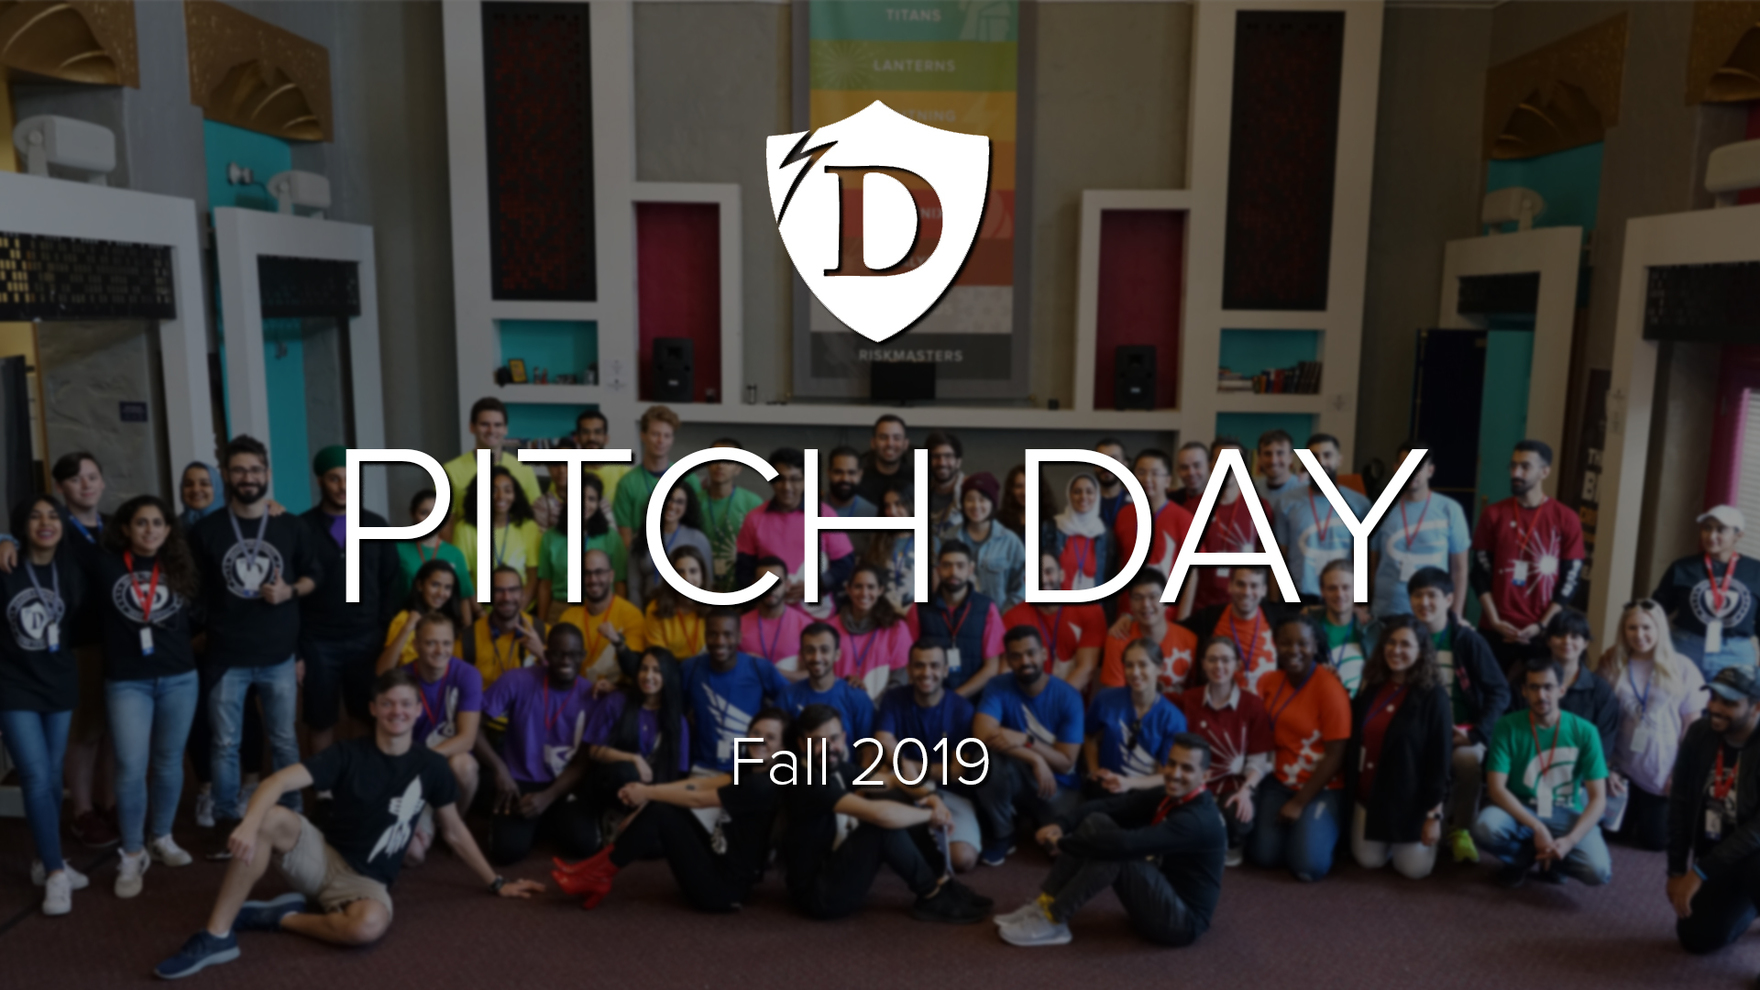 Featuredthumb fa19 pitch day poster